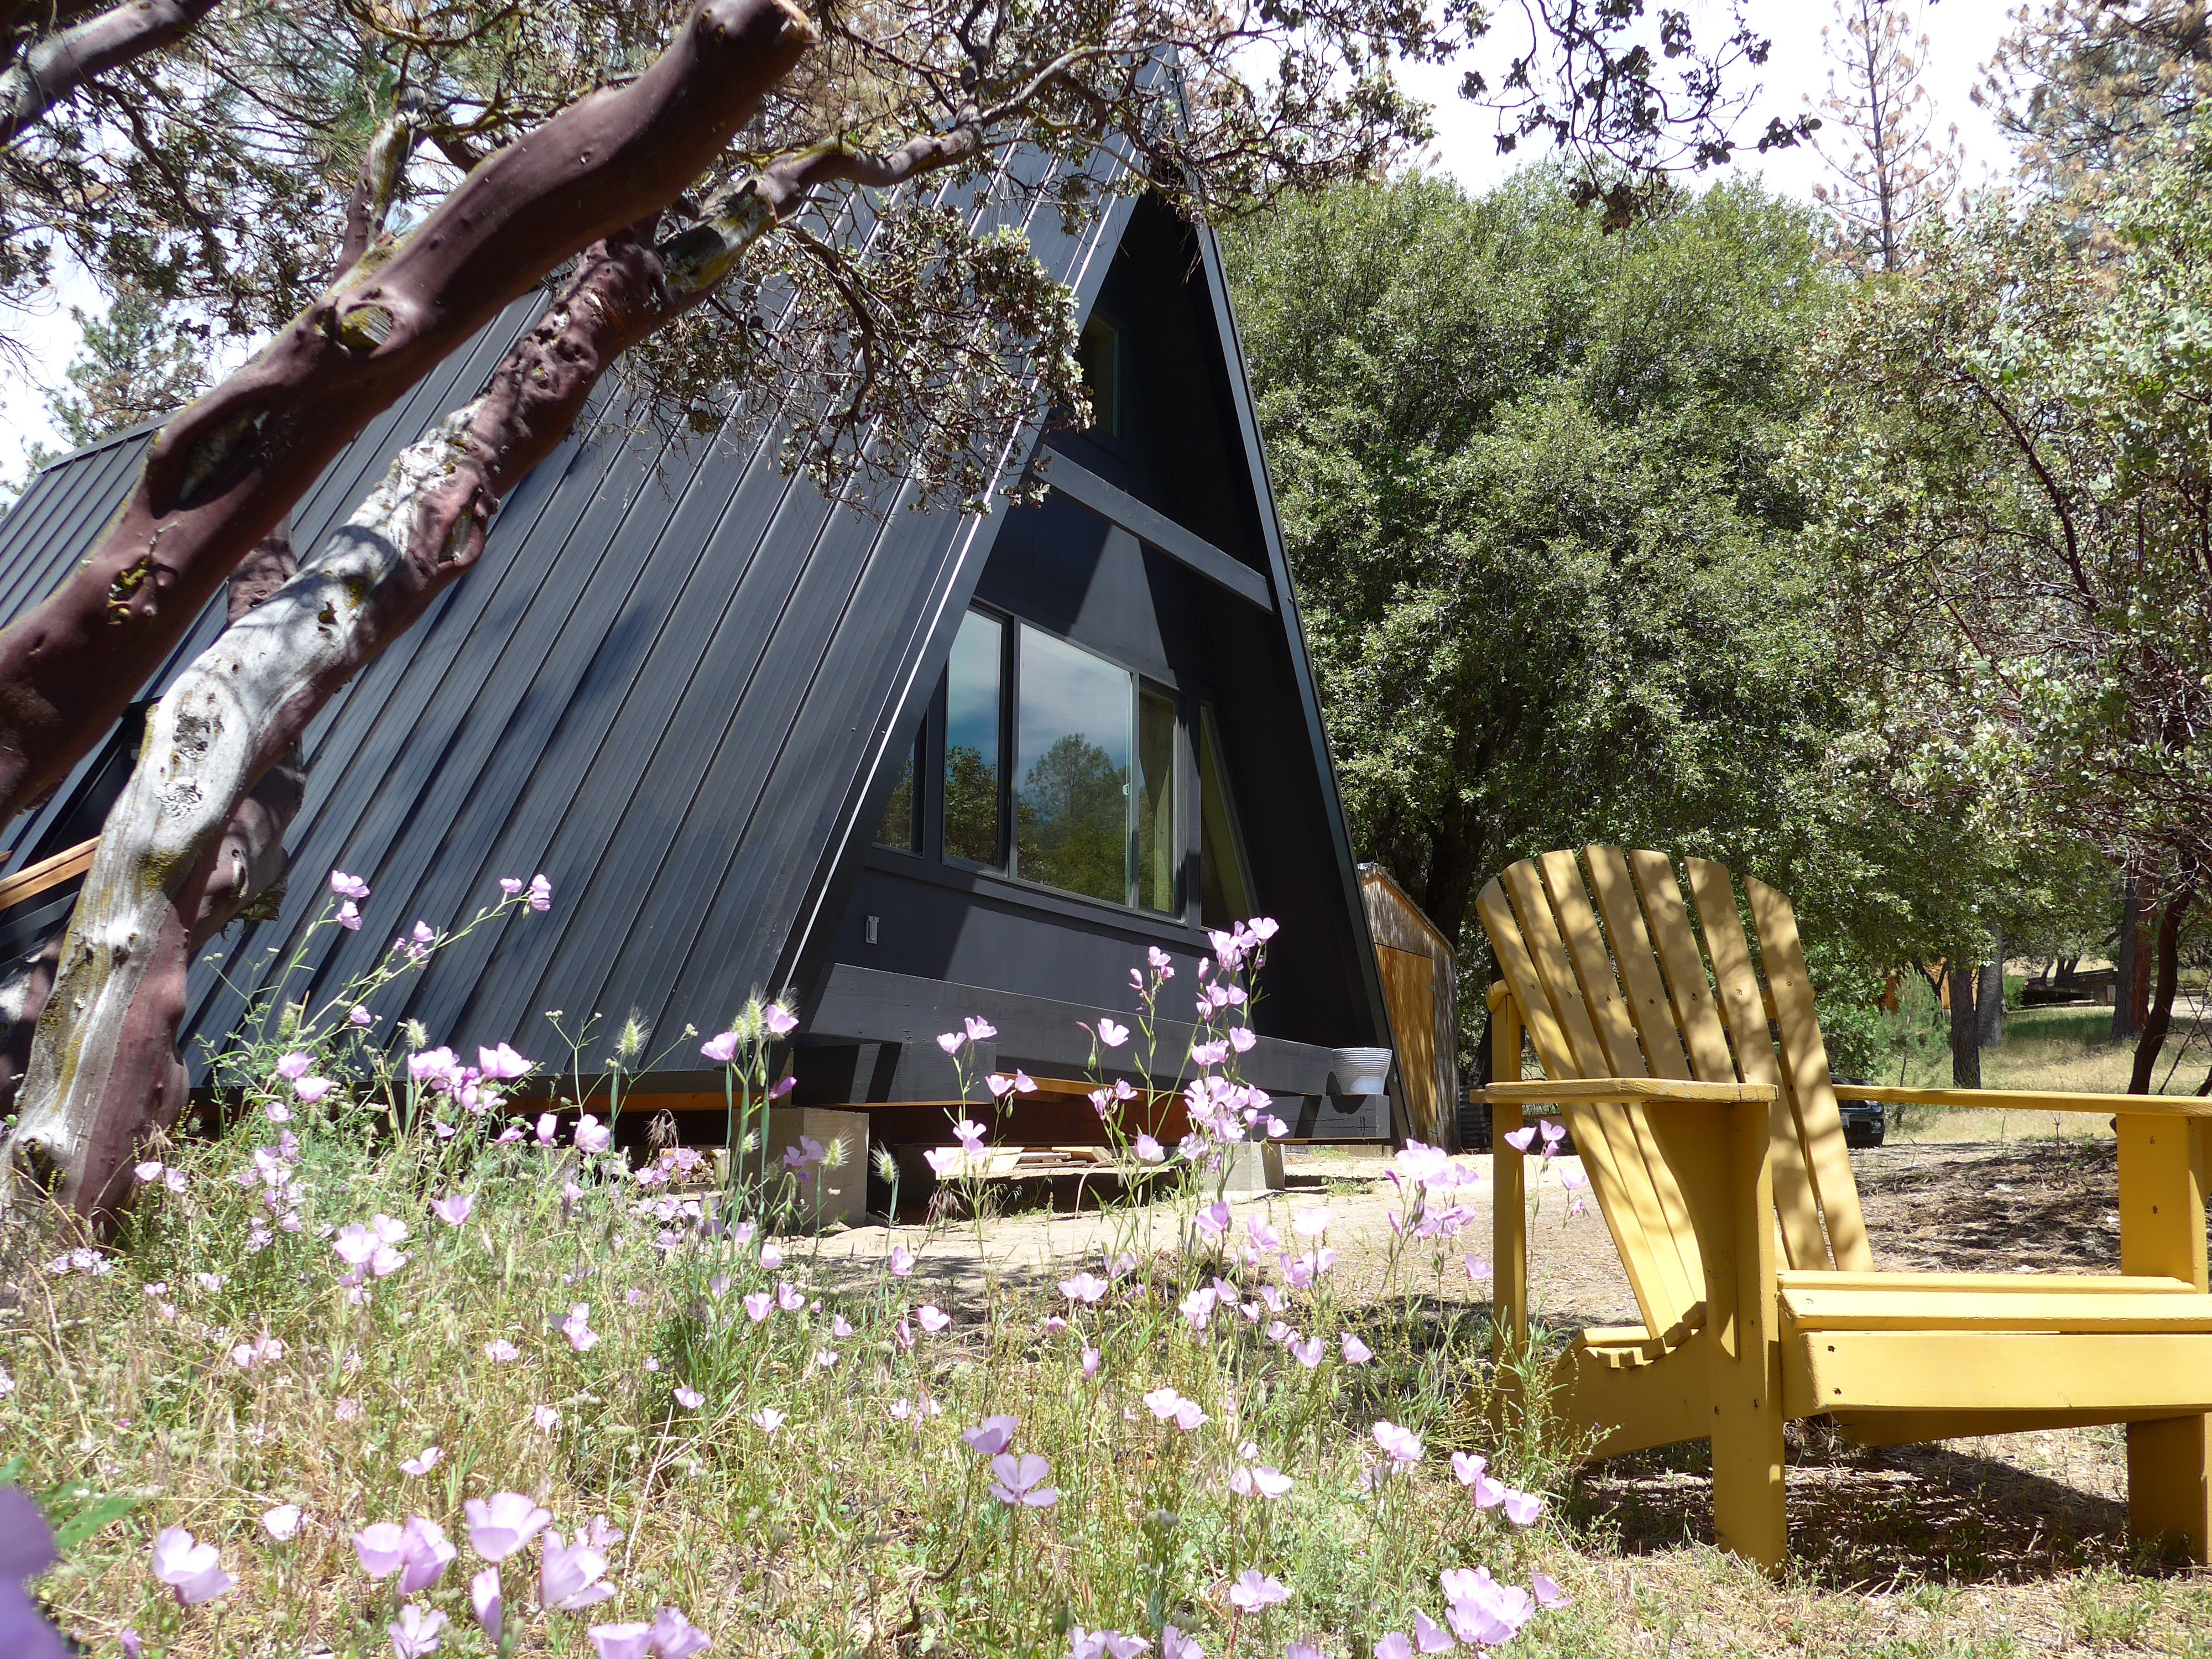 lodging koa national park cabins california site visalia sequoia campgrounds type